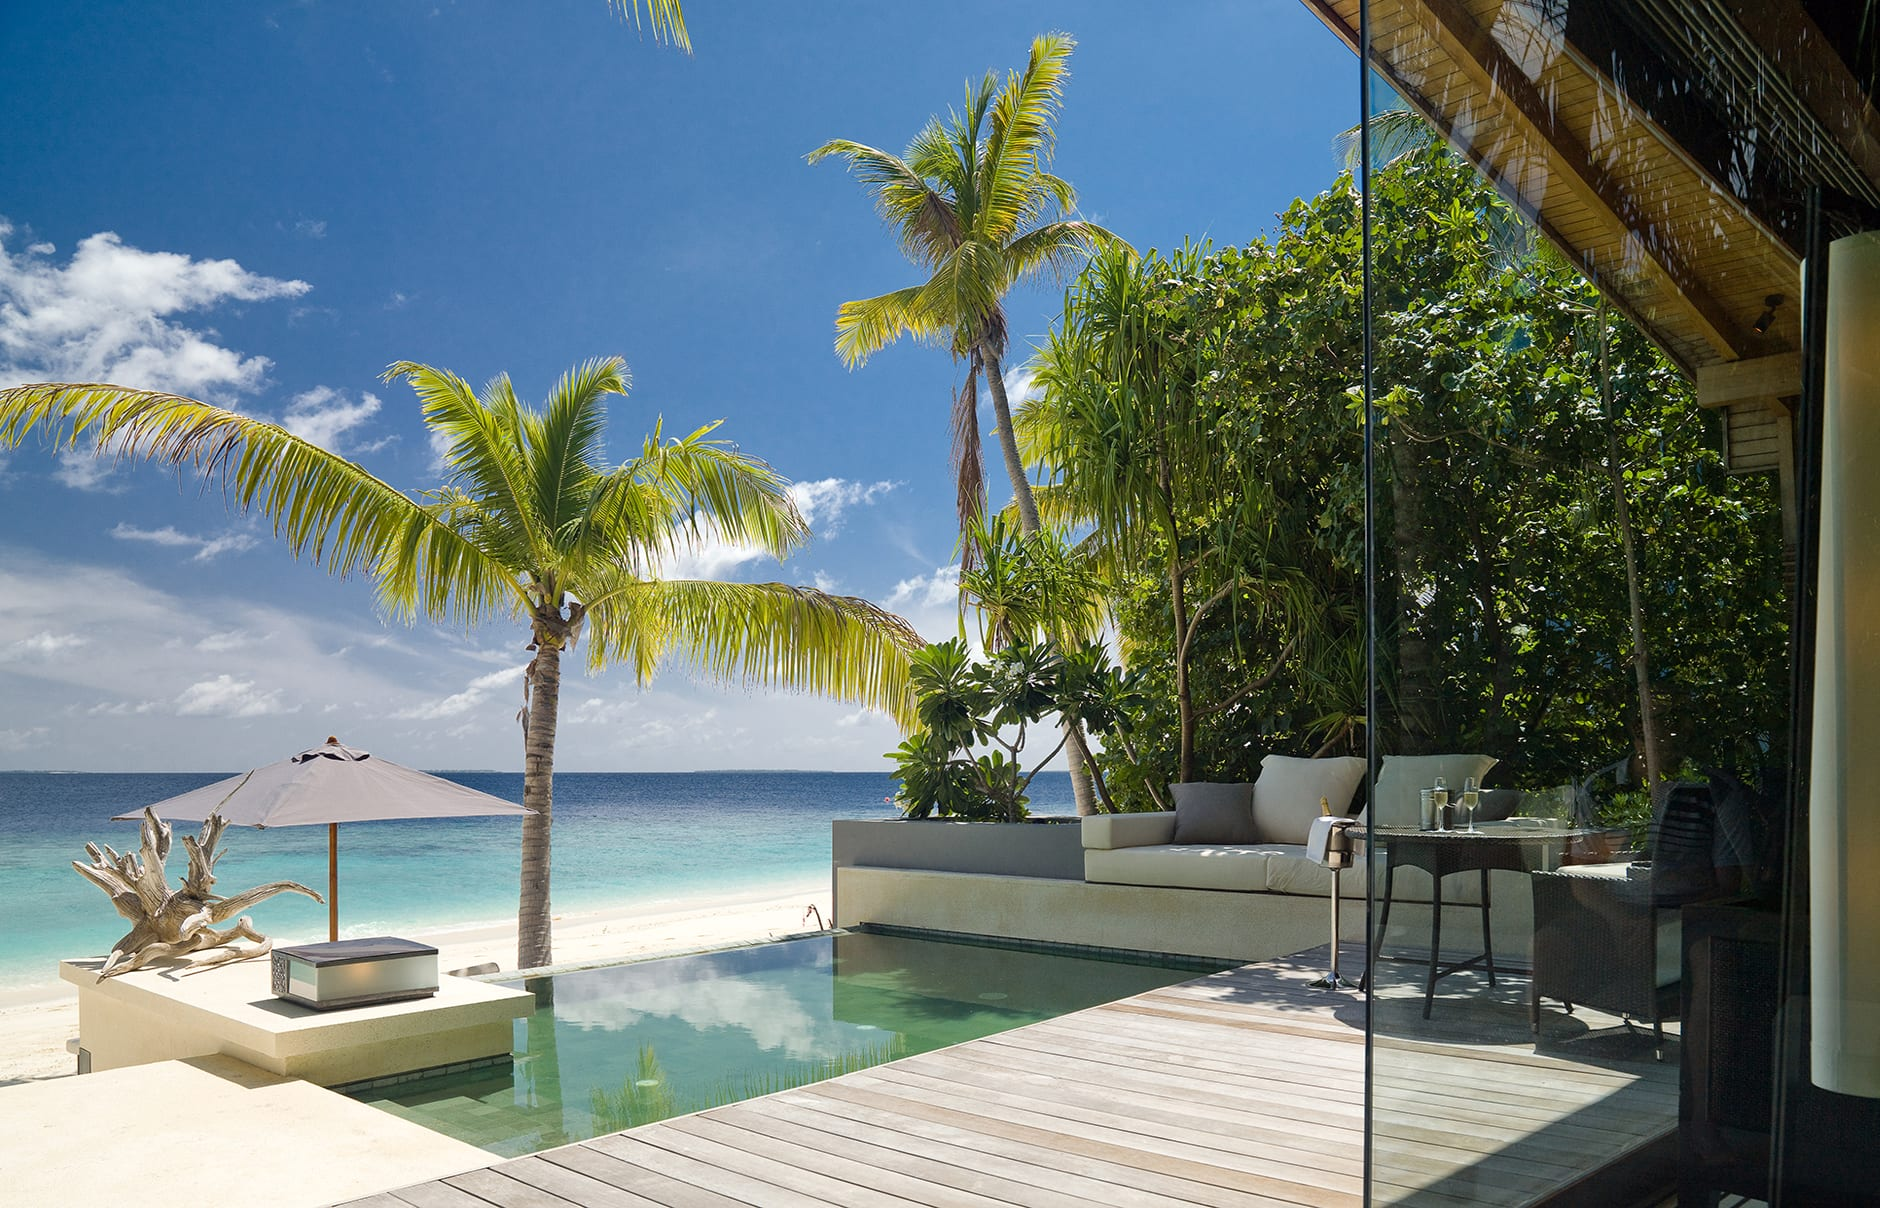 Park Hyatt Maldives, Hadahaa. Island Villa © Hyatt Corporation